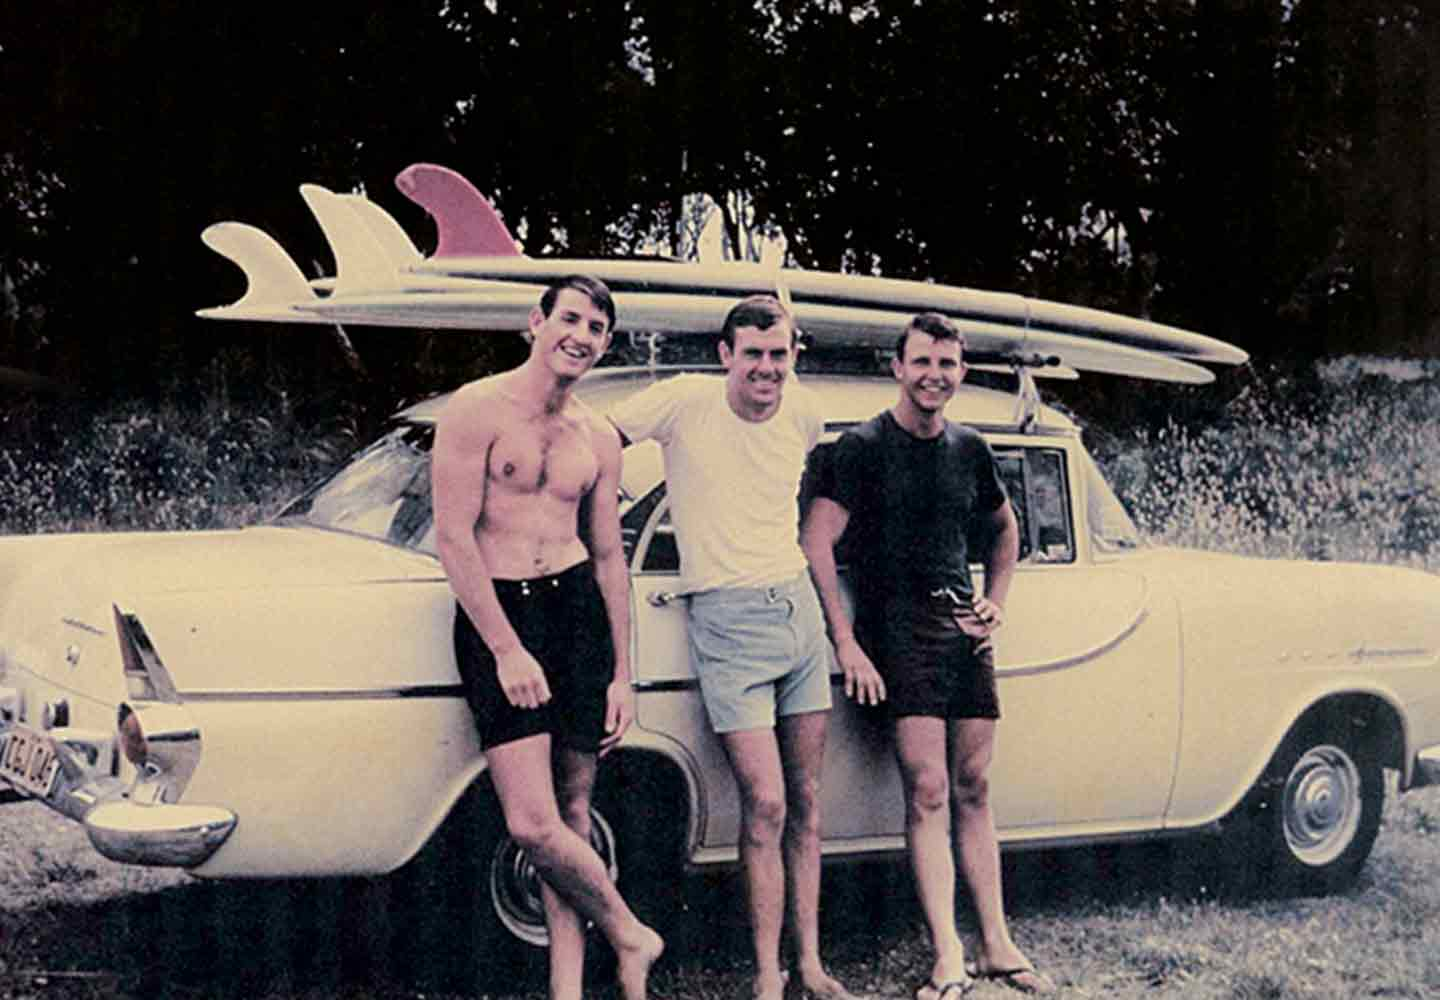 vintage photo of three surfers standing by a car